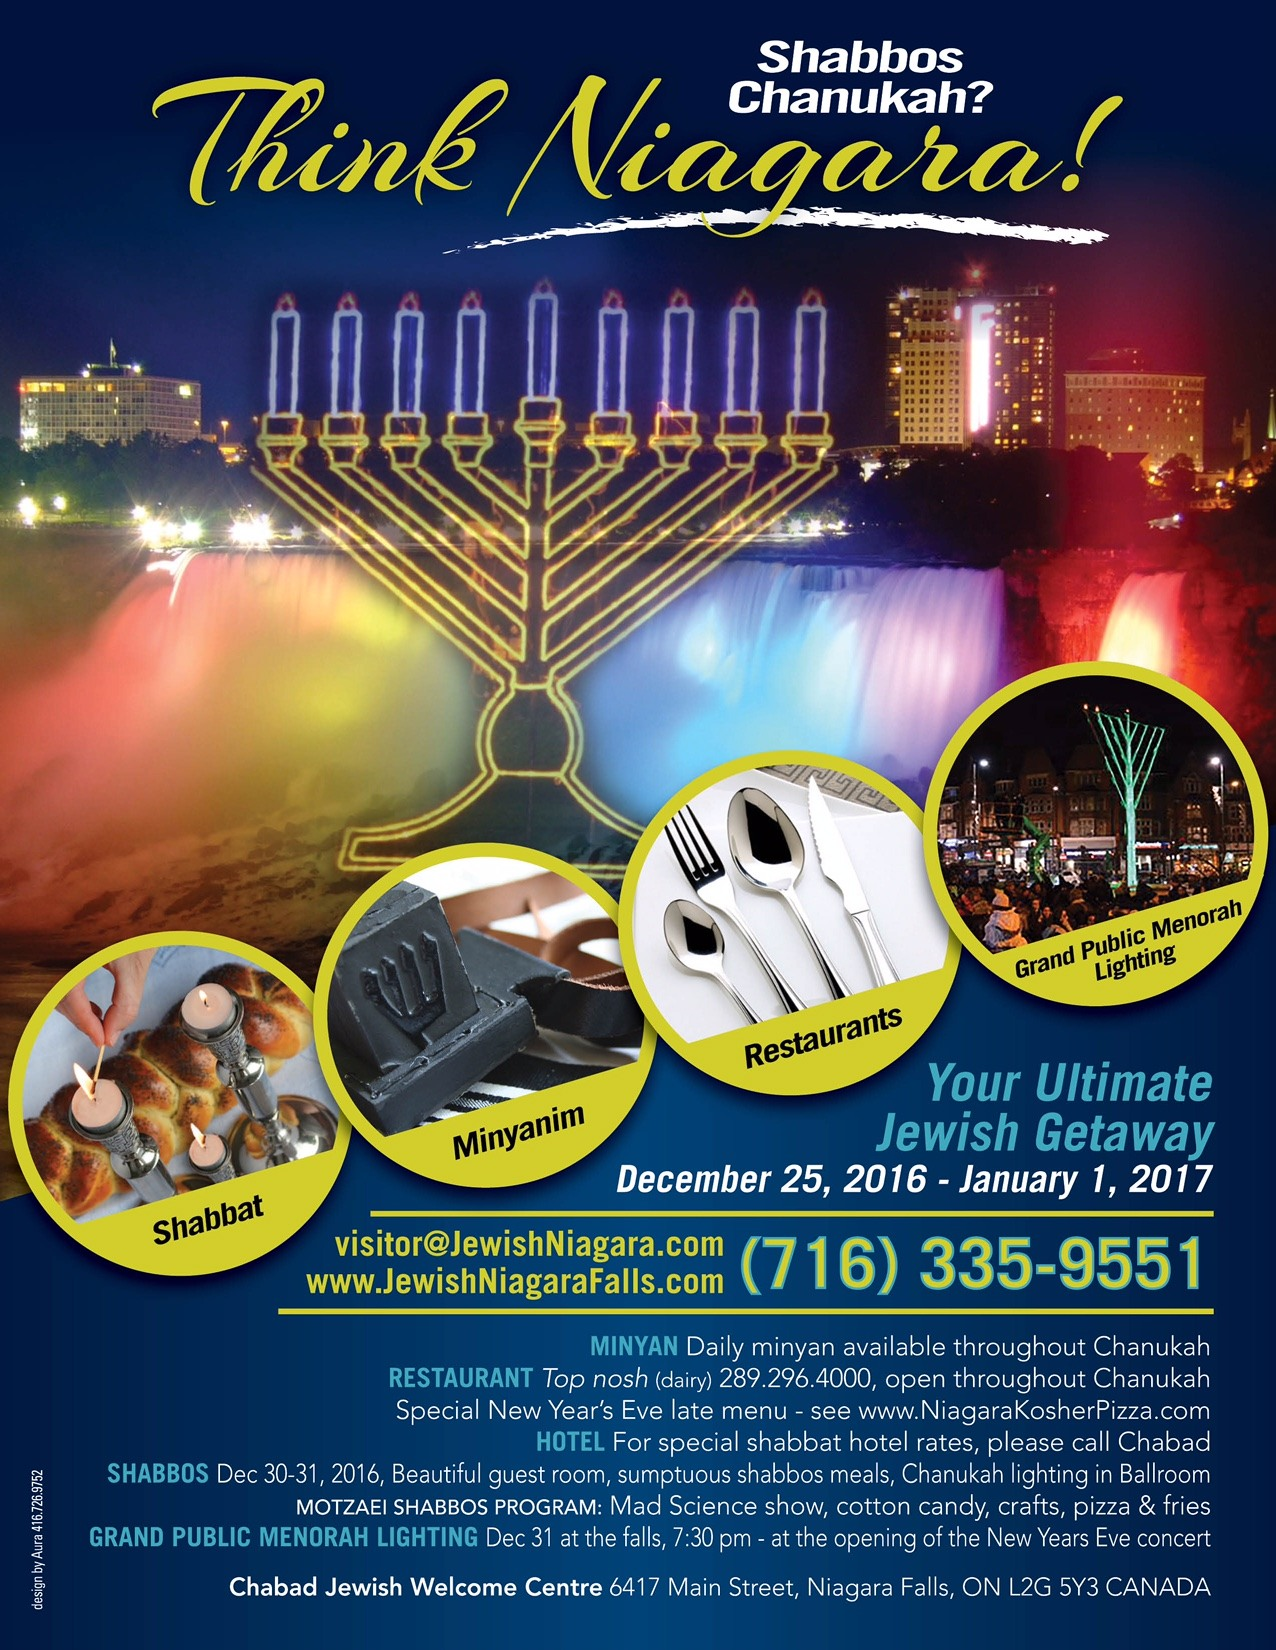 chabad-niagara_chanukah-flyer_v3_dark-1